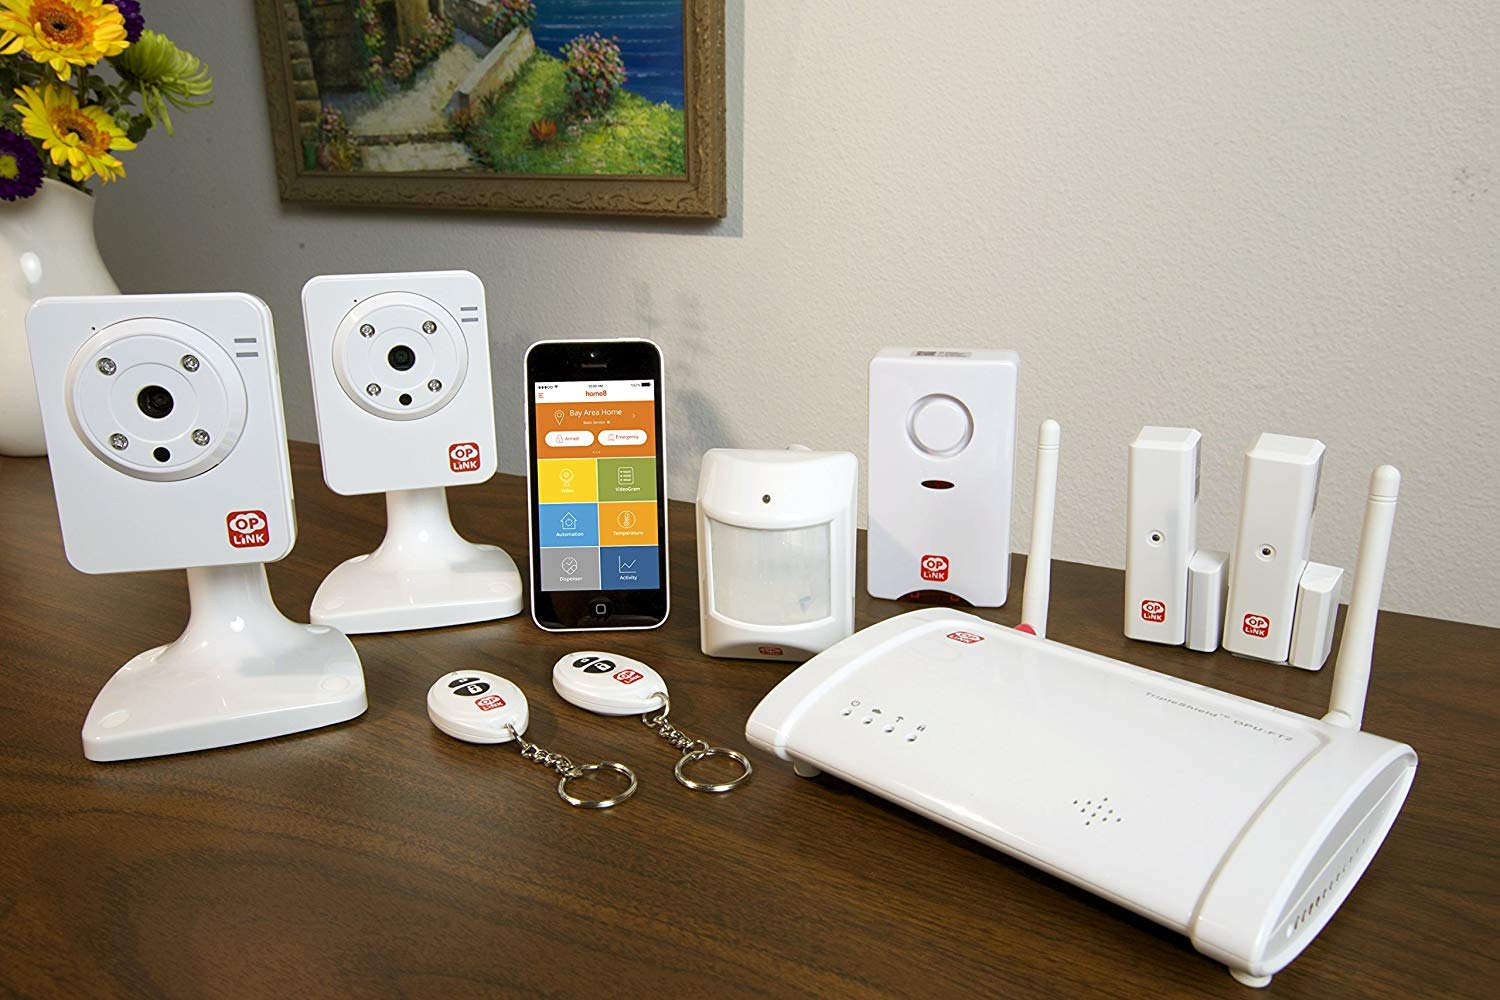 Home8 Wireless Security System Add-on's